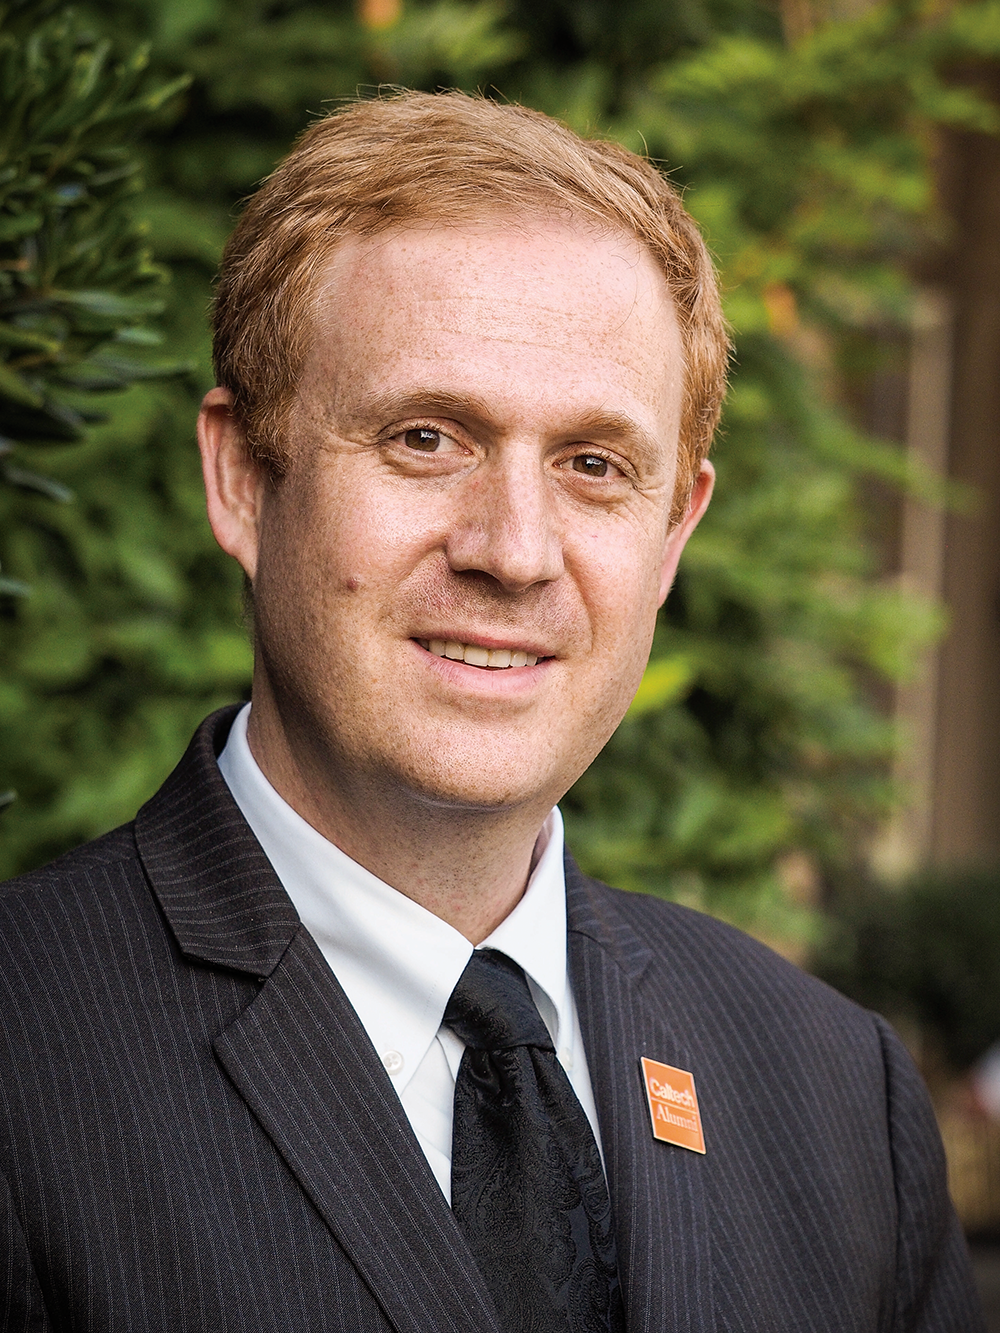 David Tytell, President, Caltech Alumni Association